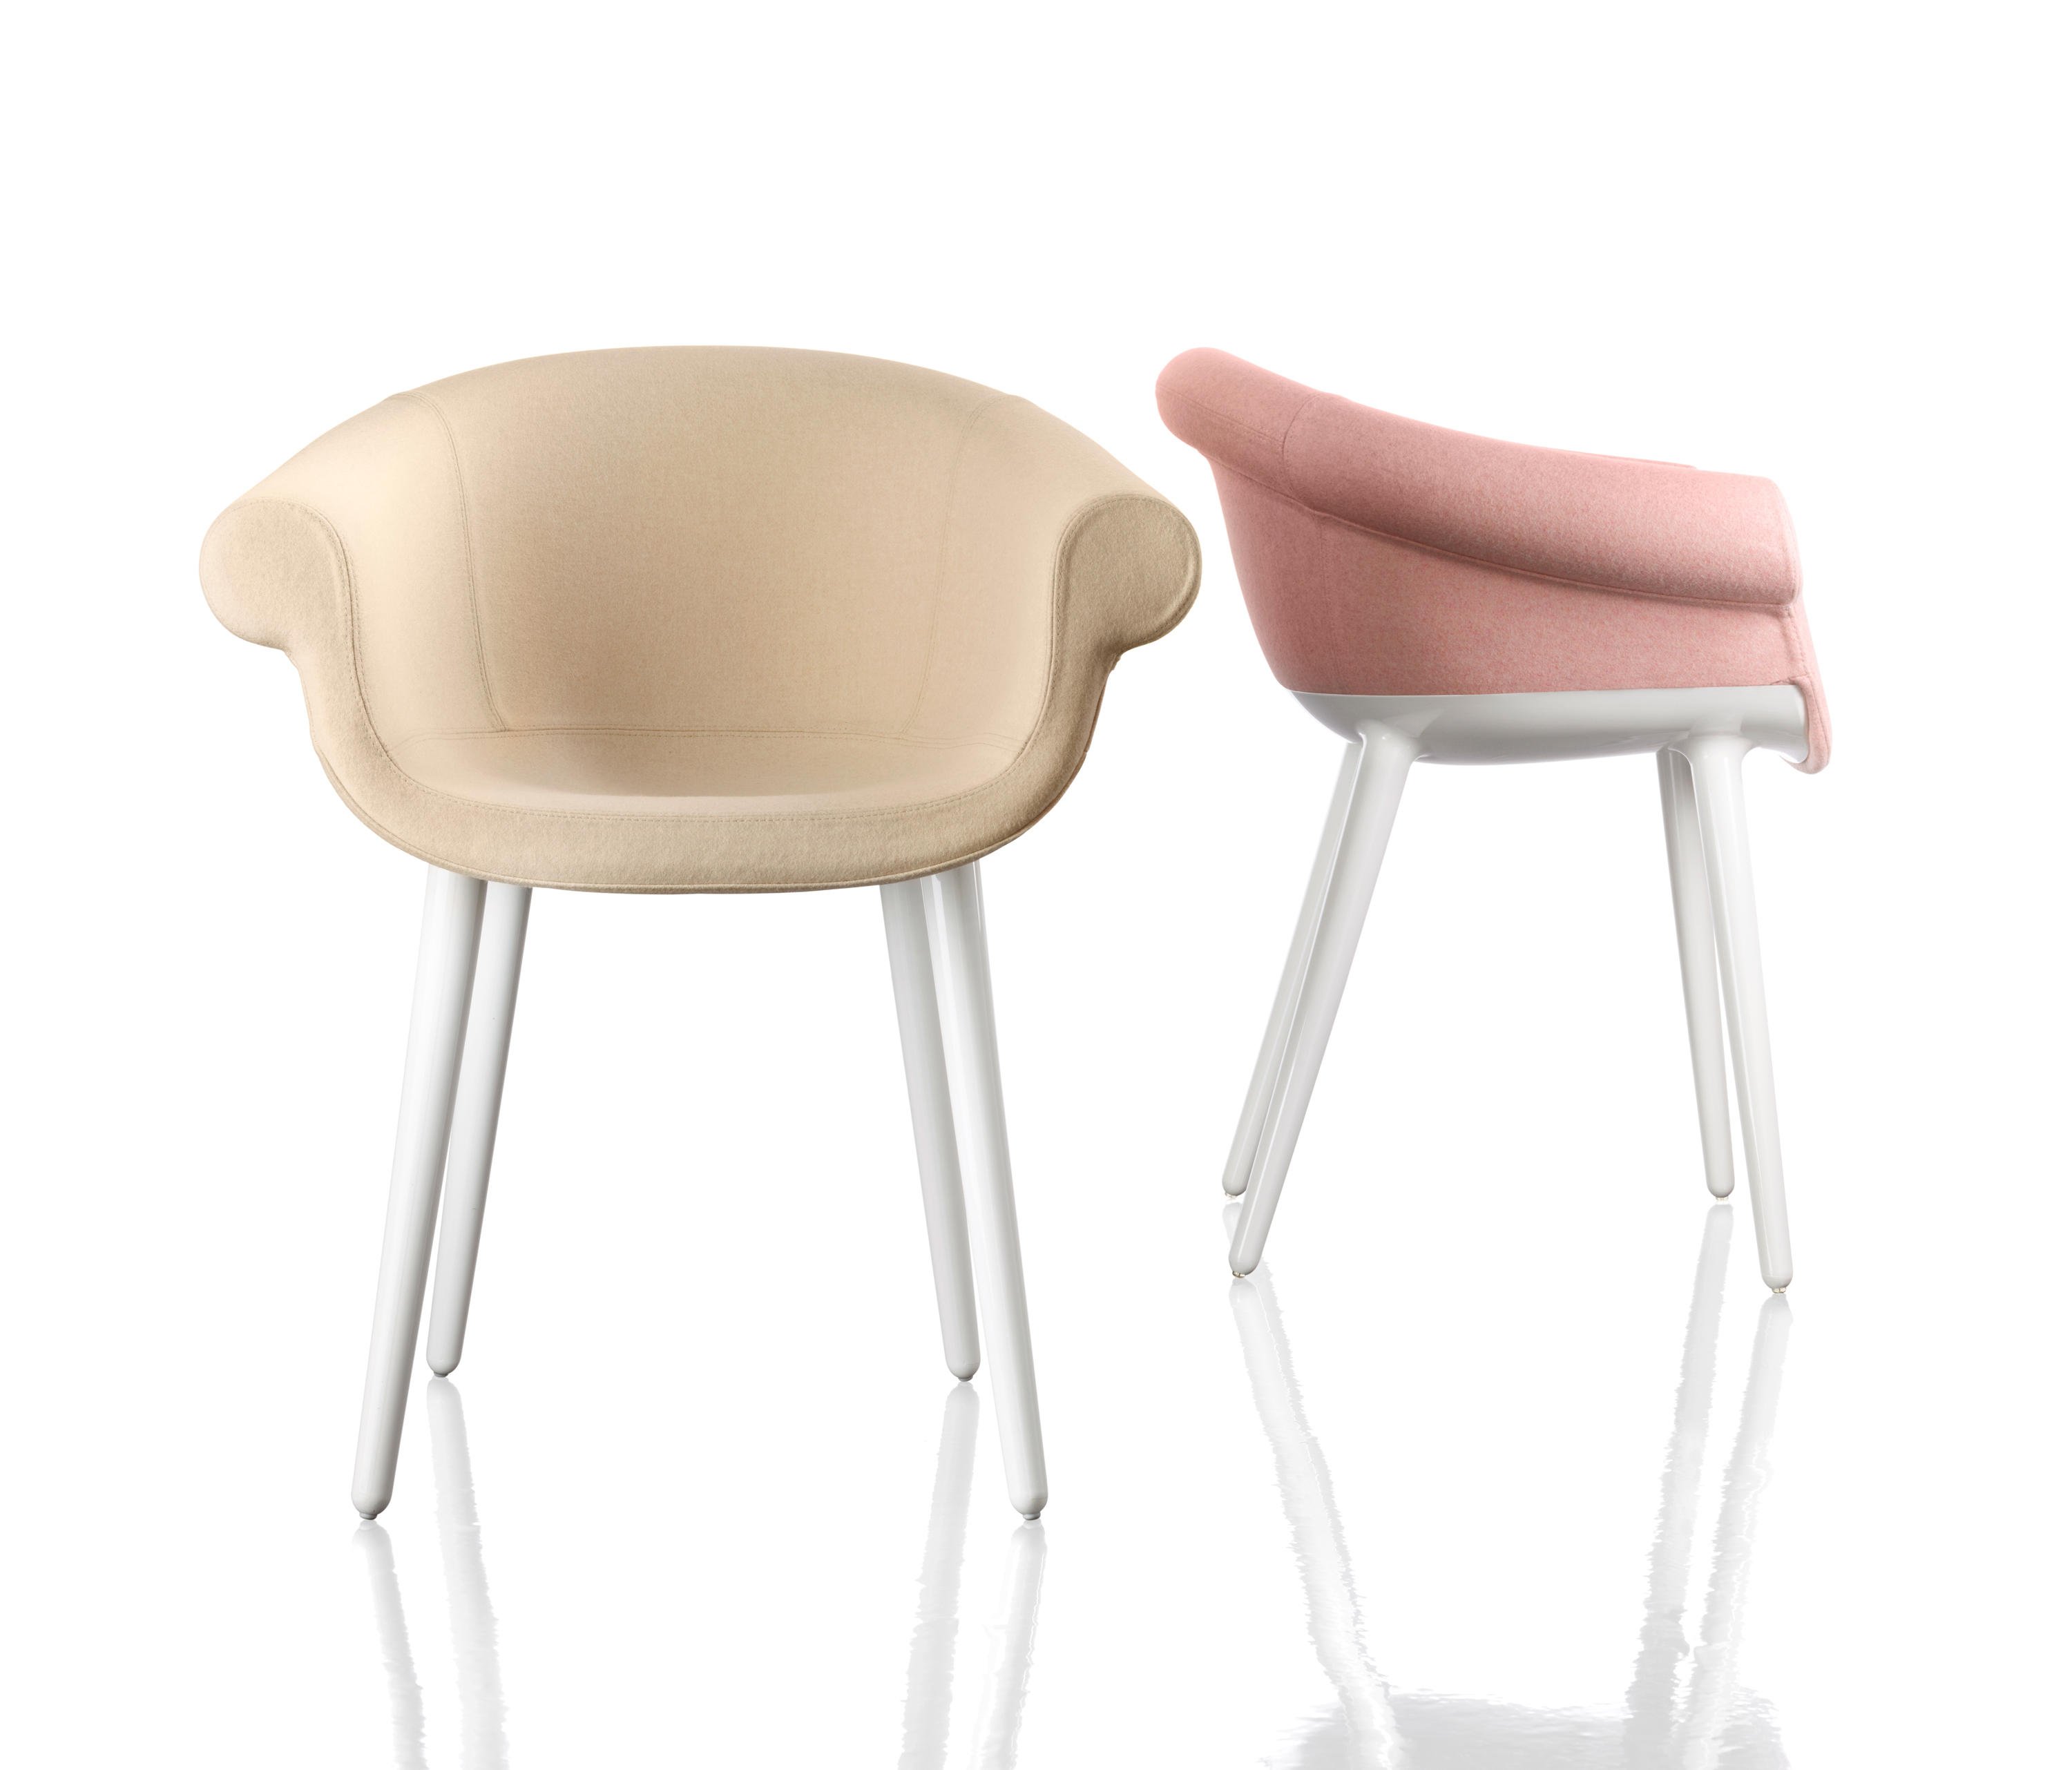 Cyborg chair restaurant chairs from magis architonic for Magis chair